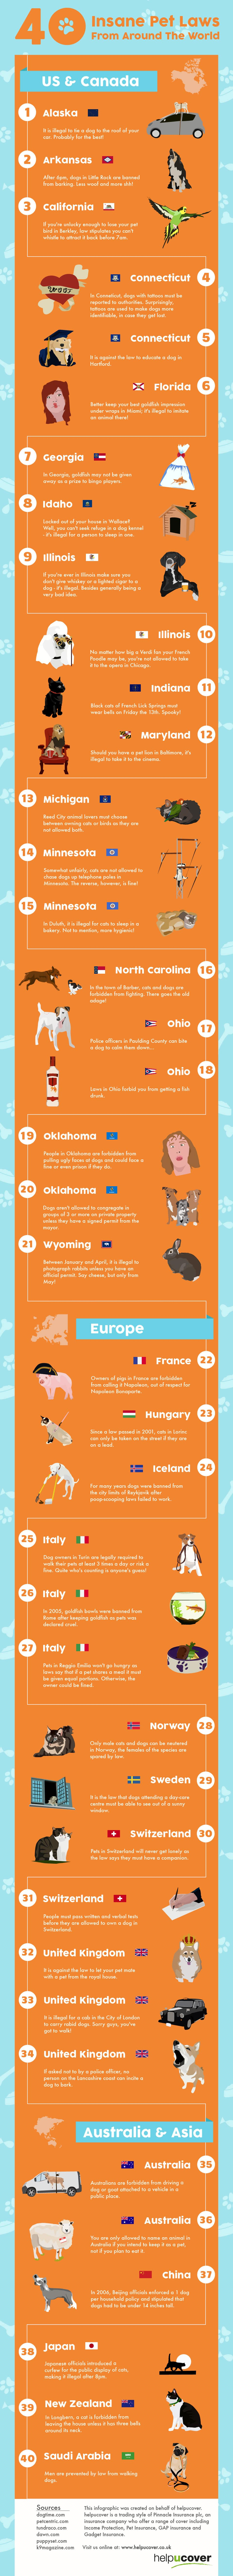 Strangest 40 Pet Laws Infographic